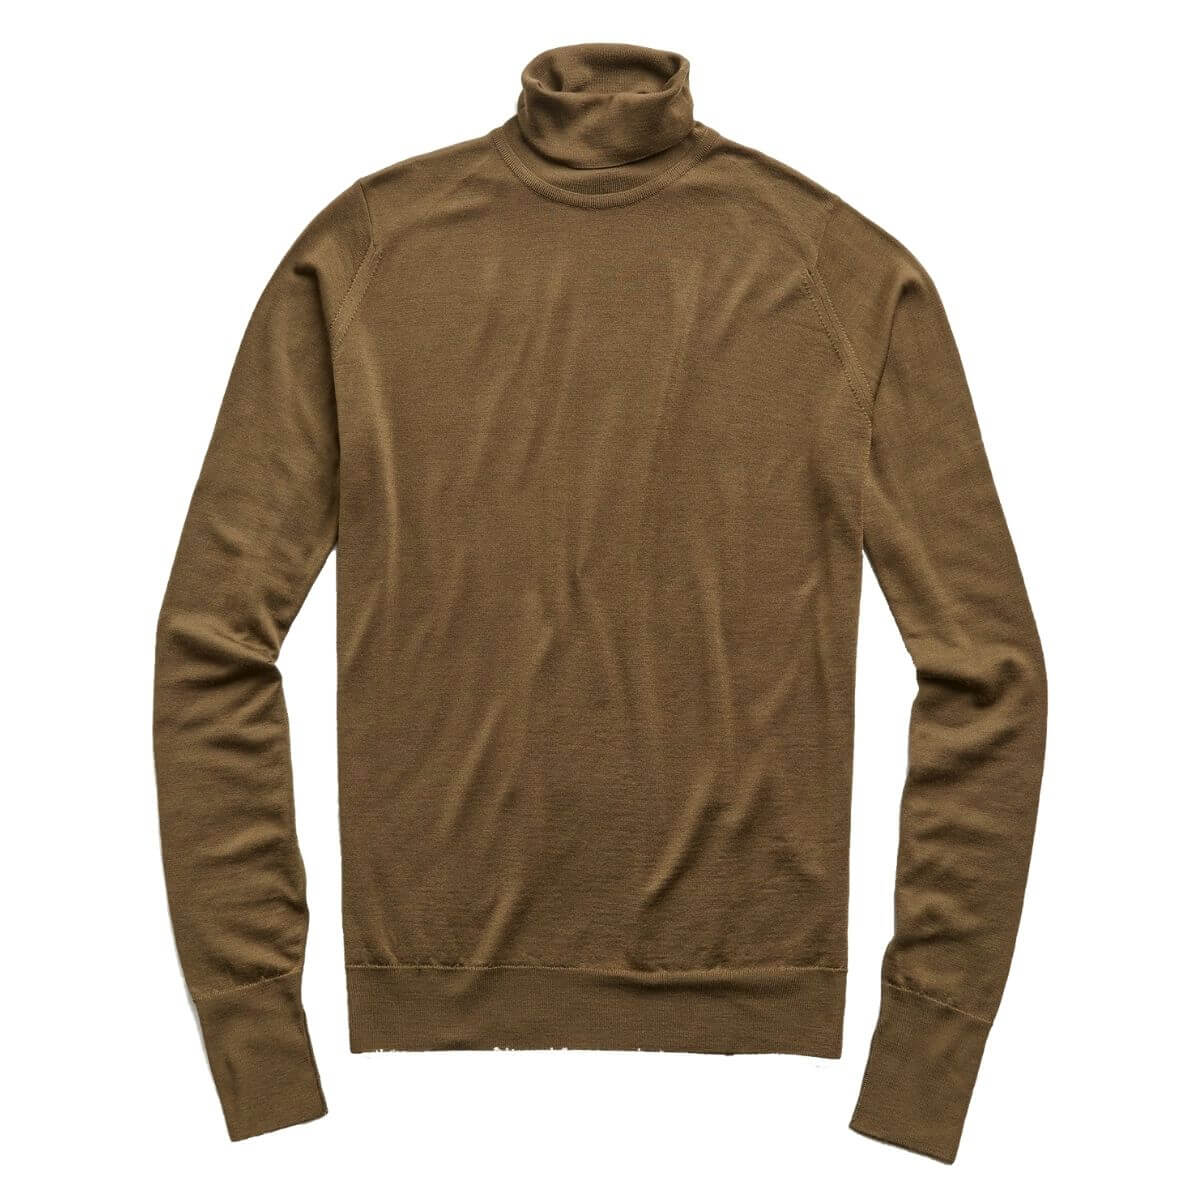 Dark khaki turtleneck sweater.